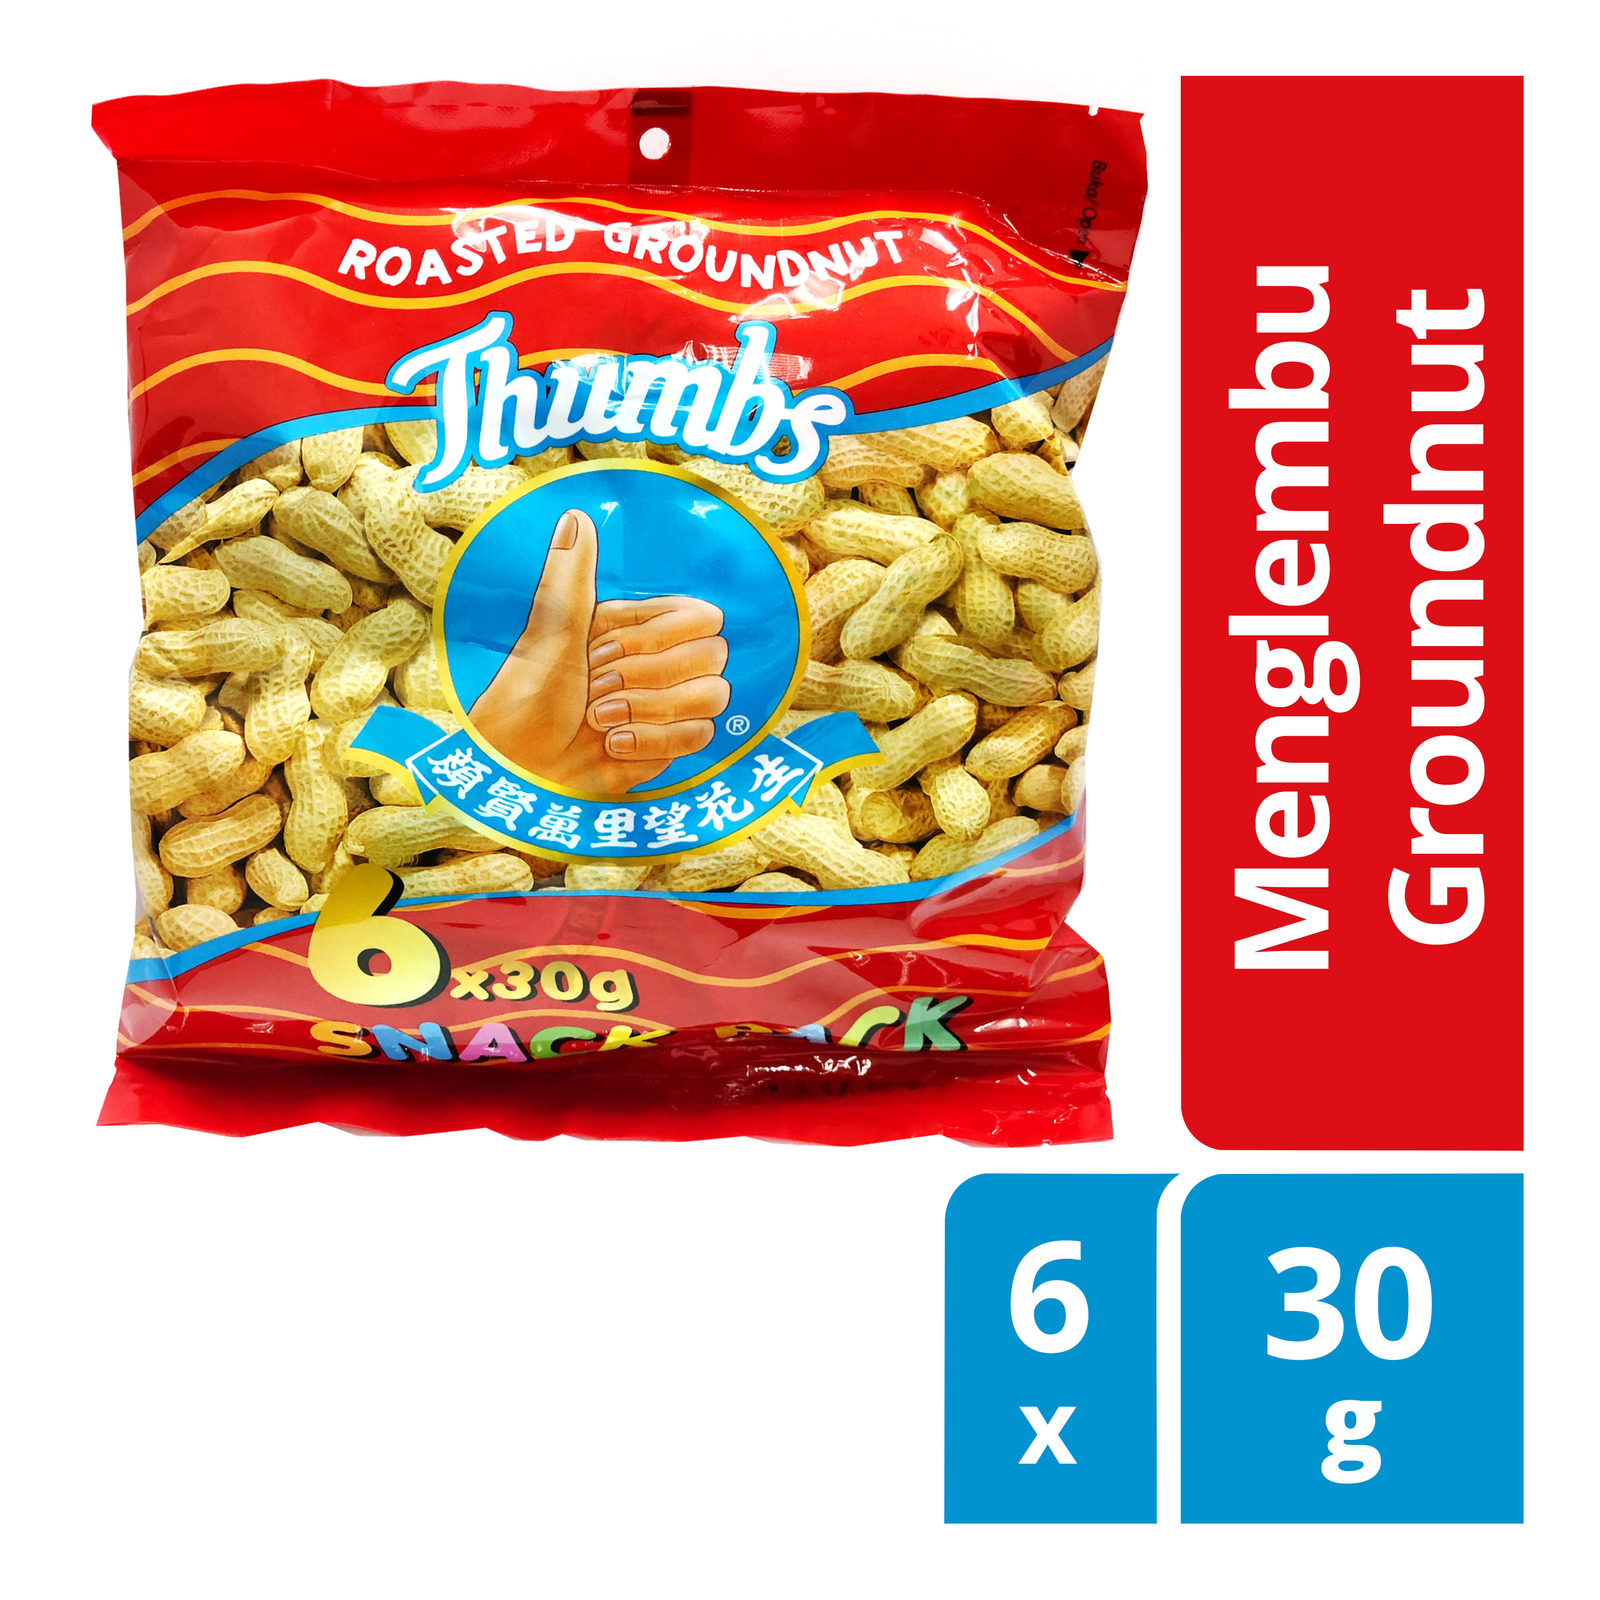 HAND BRAND Roasted Groundnut Snack Pack 6sX30g